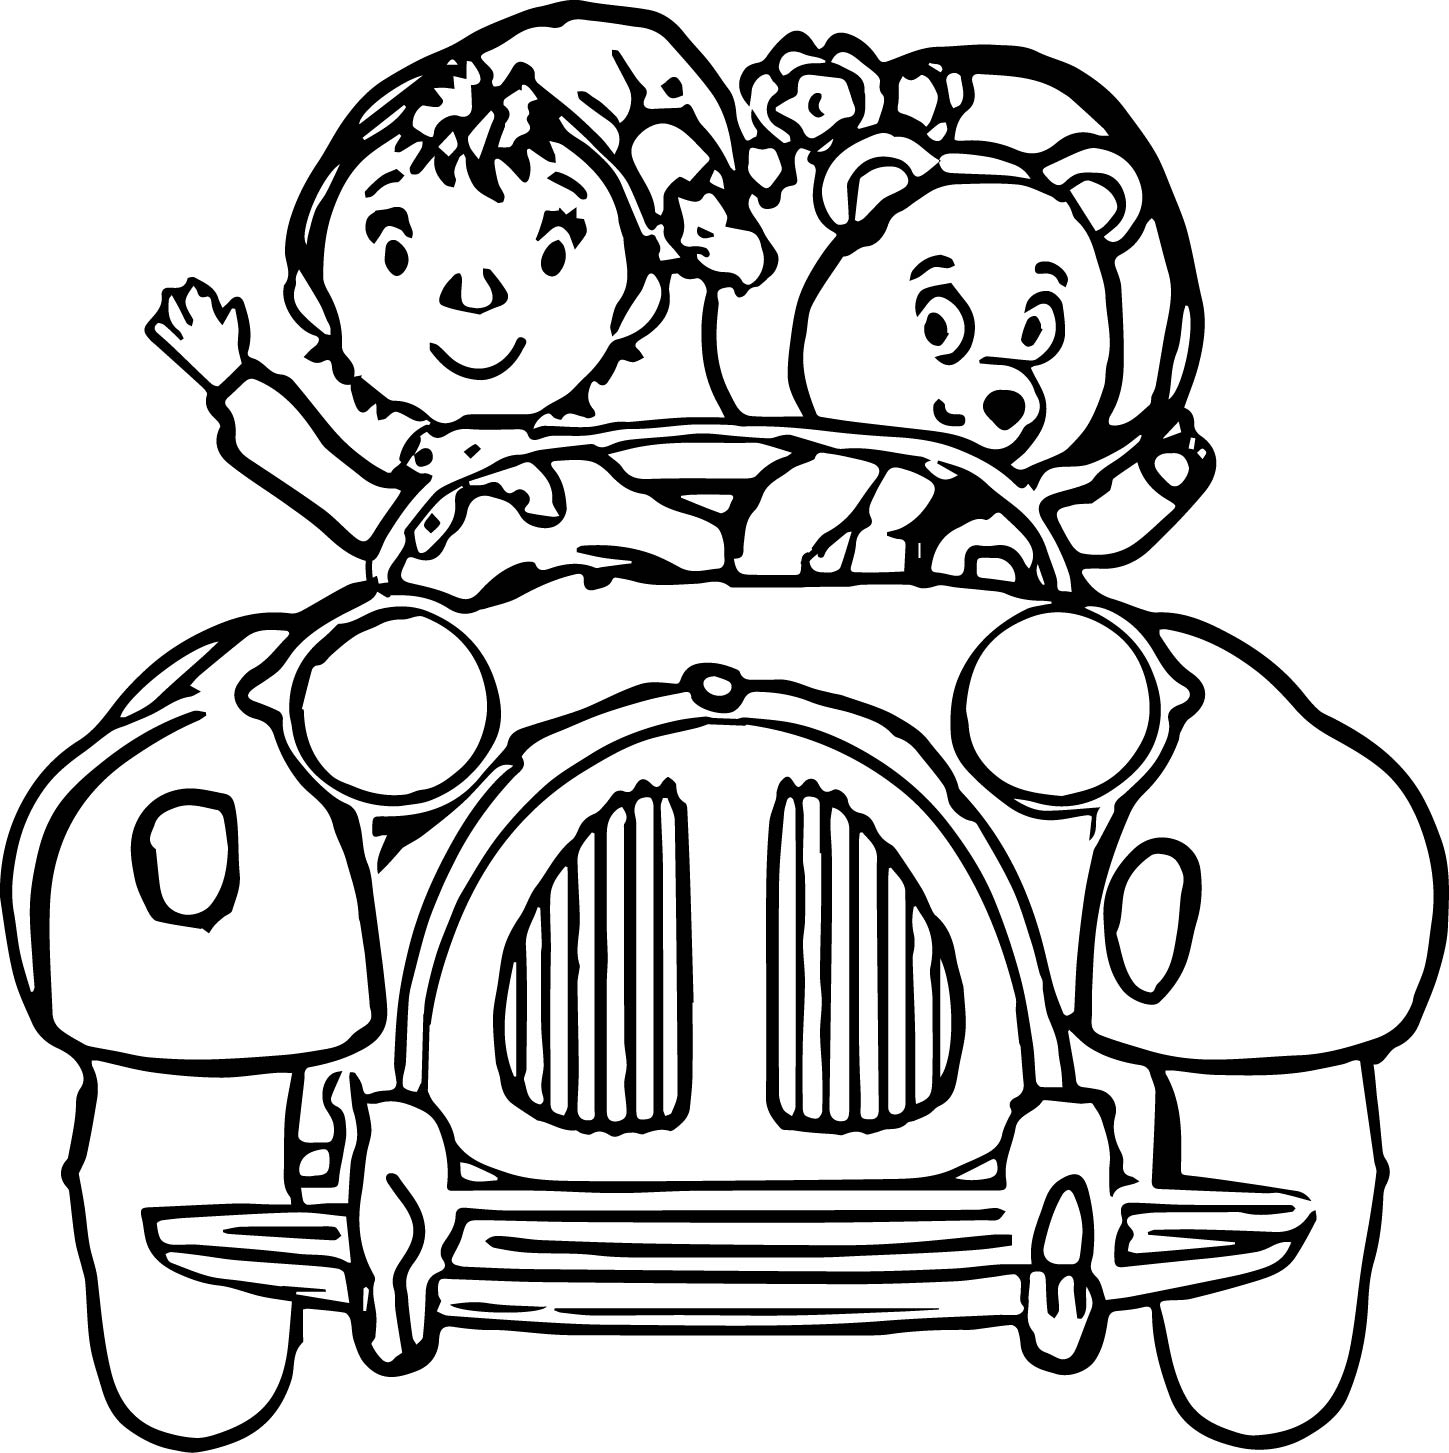 noddy coloring pages - photo#4